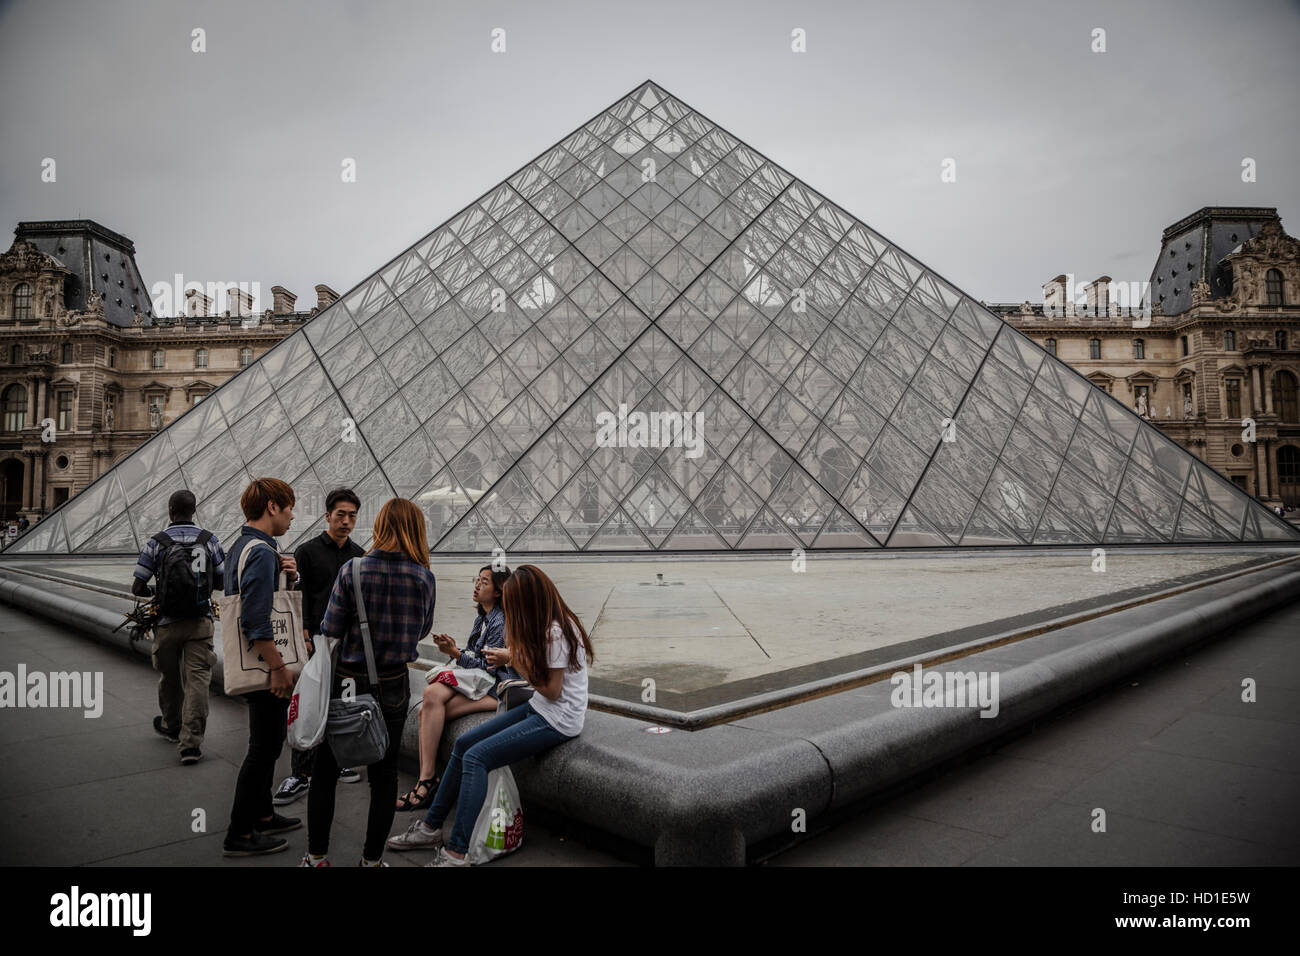 Tourists in the Louvre's central courtyards with the Louvre pyramid and palace. The Louvre is one of the world's - Stock Image